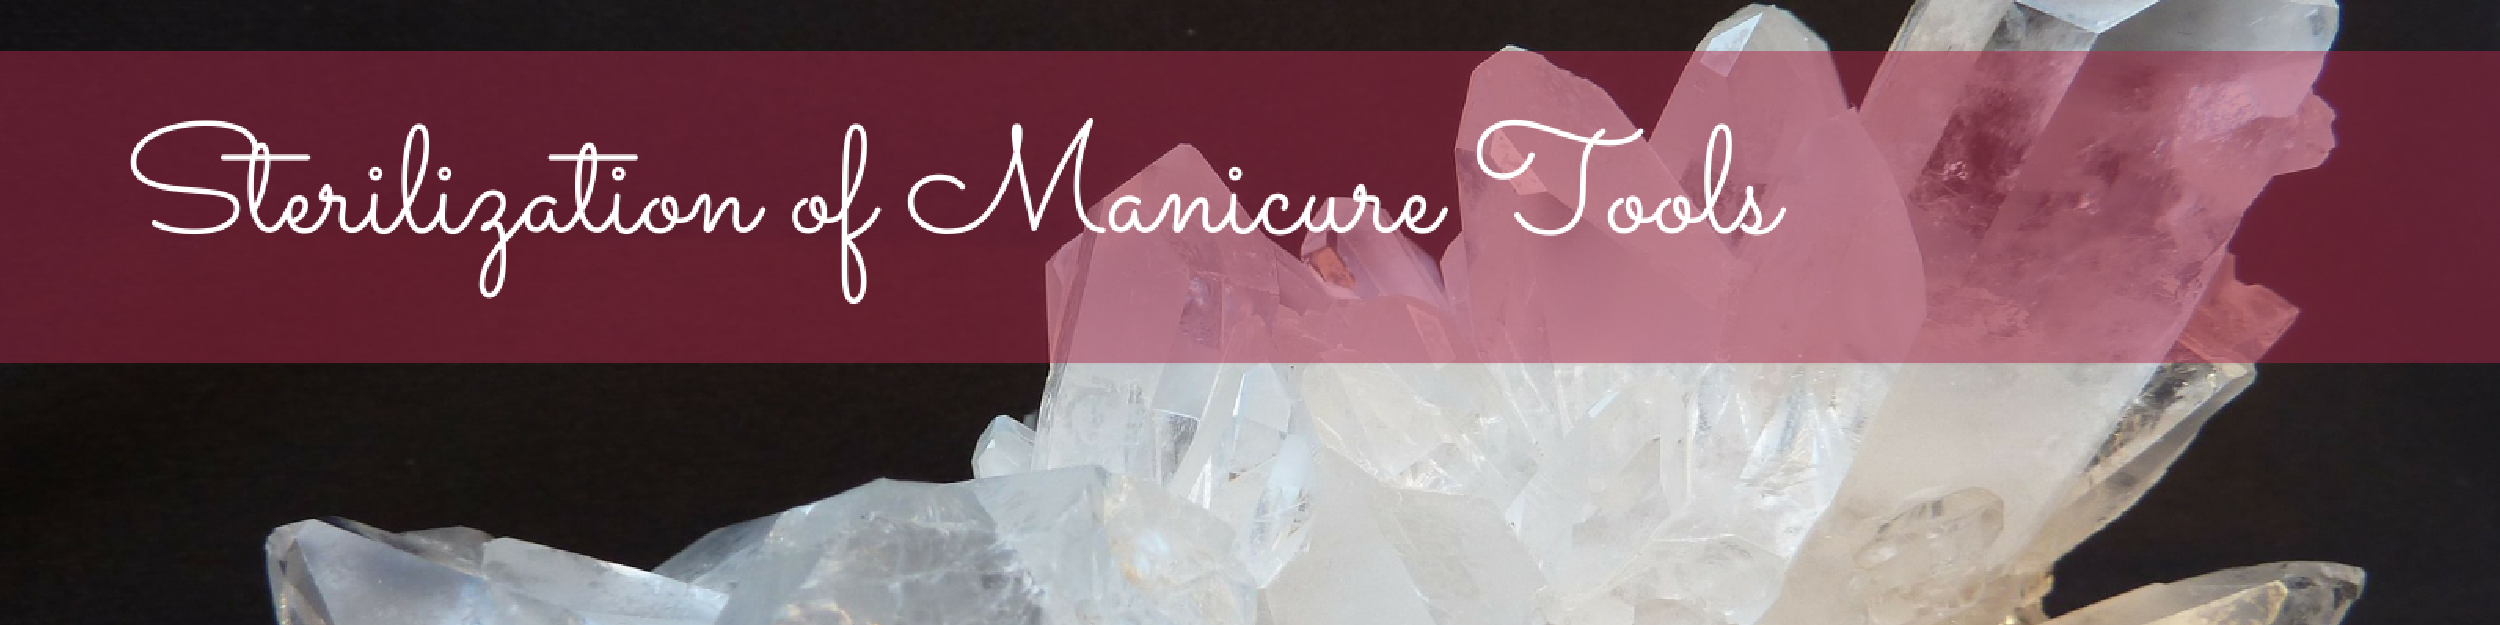 Sterilization of Manicure Tools